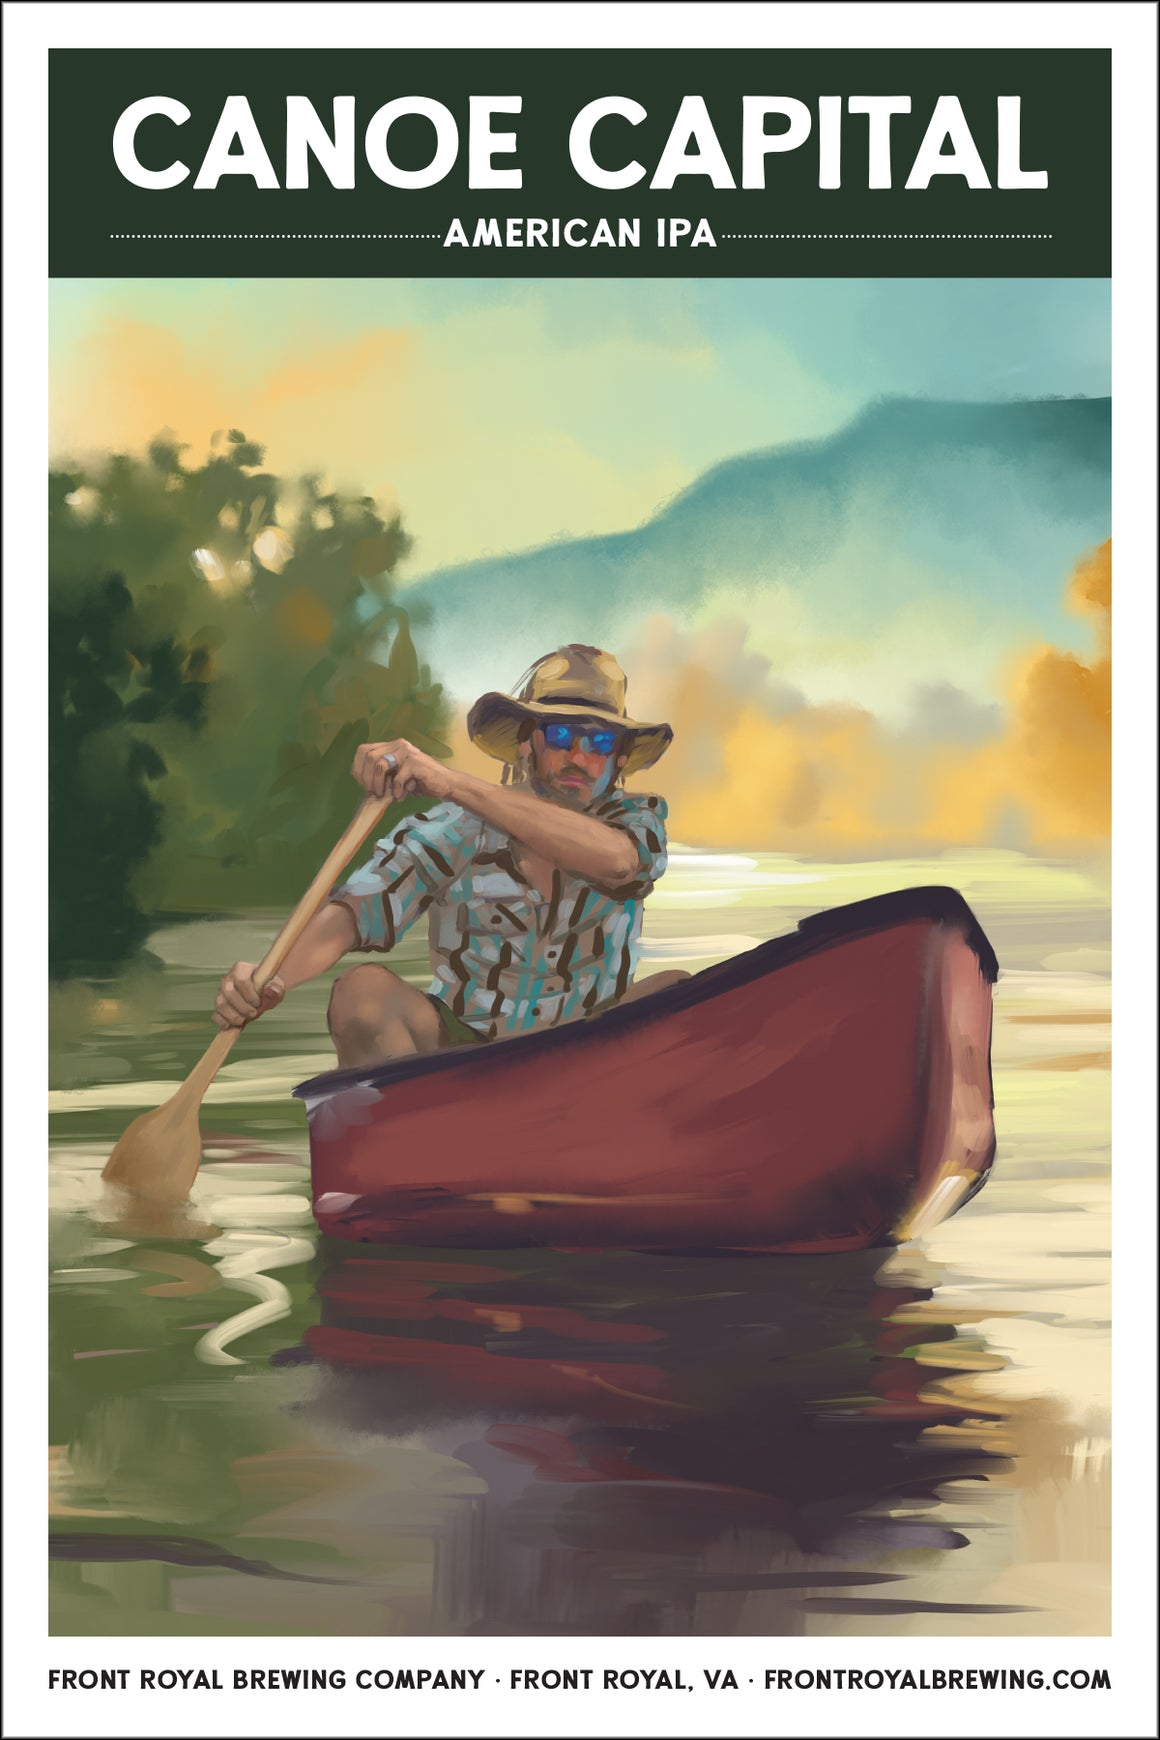 Canoe Capital Art Print